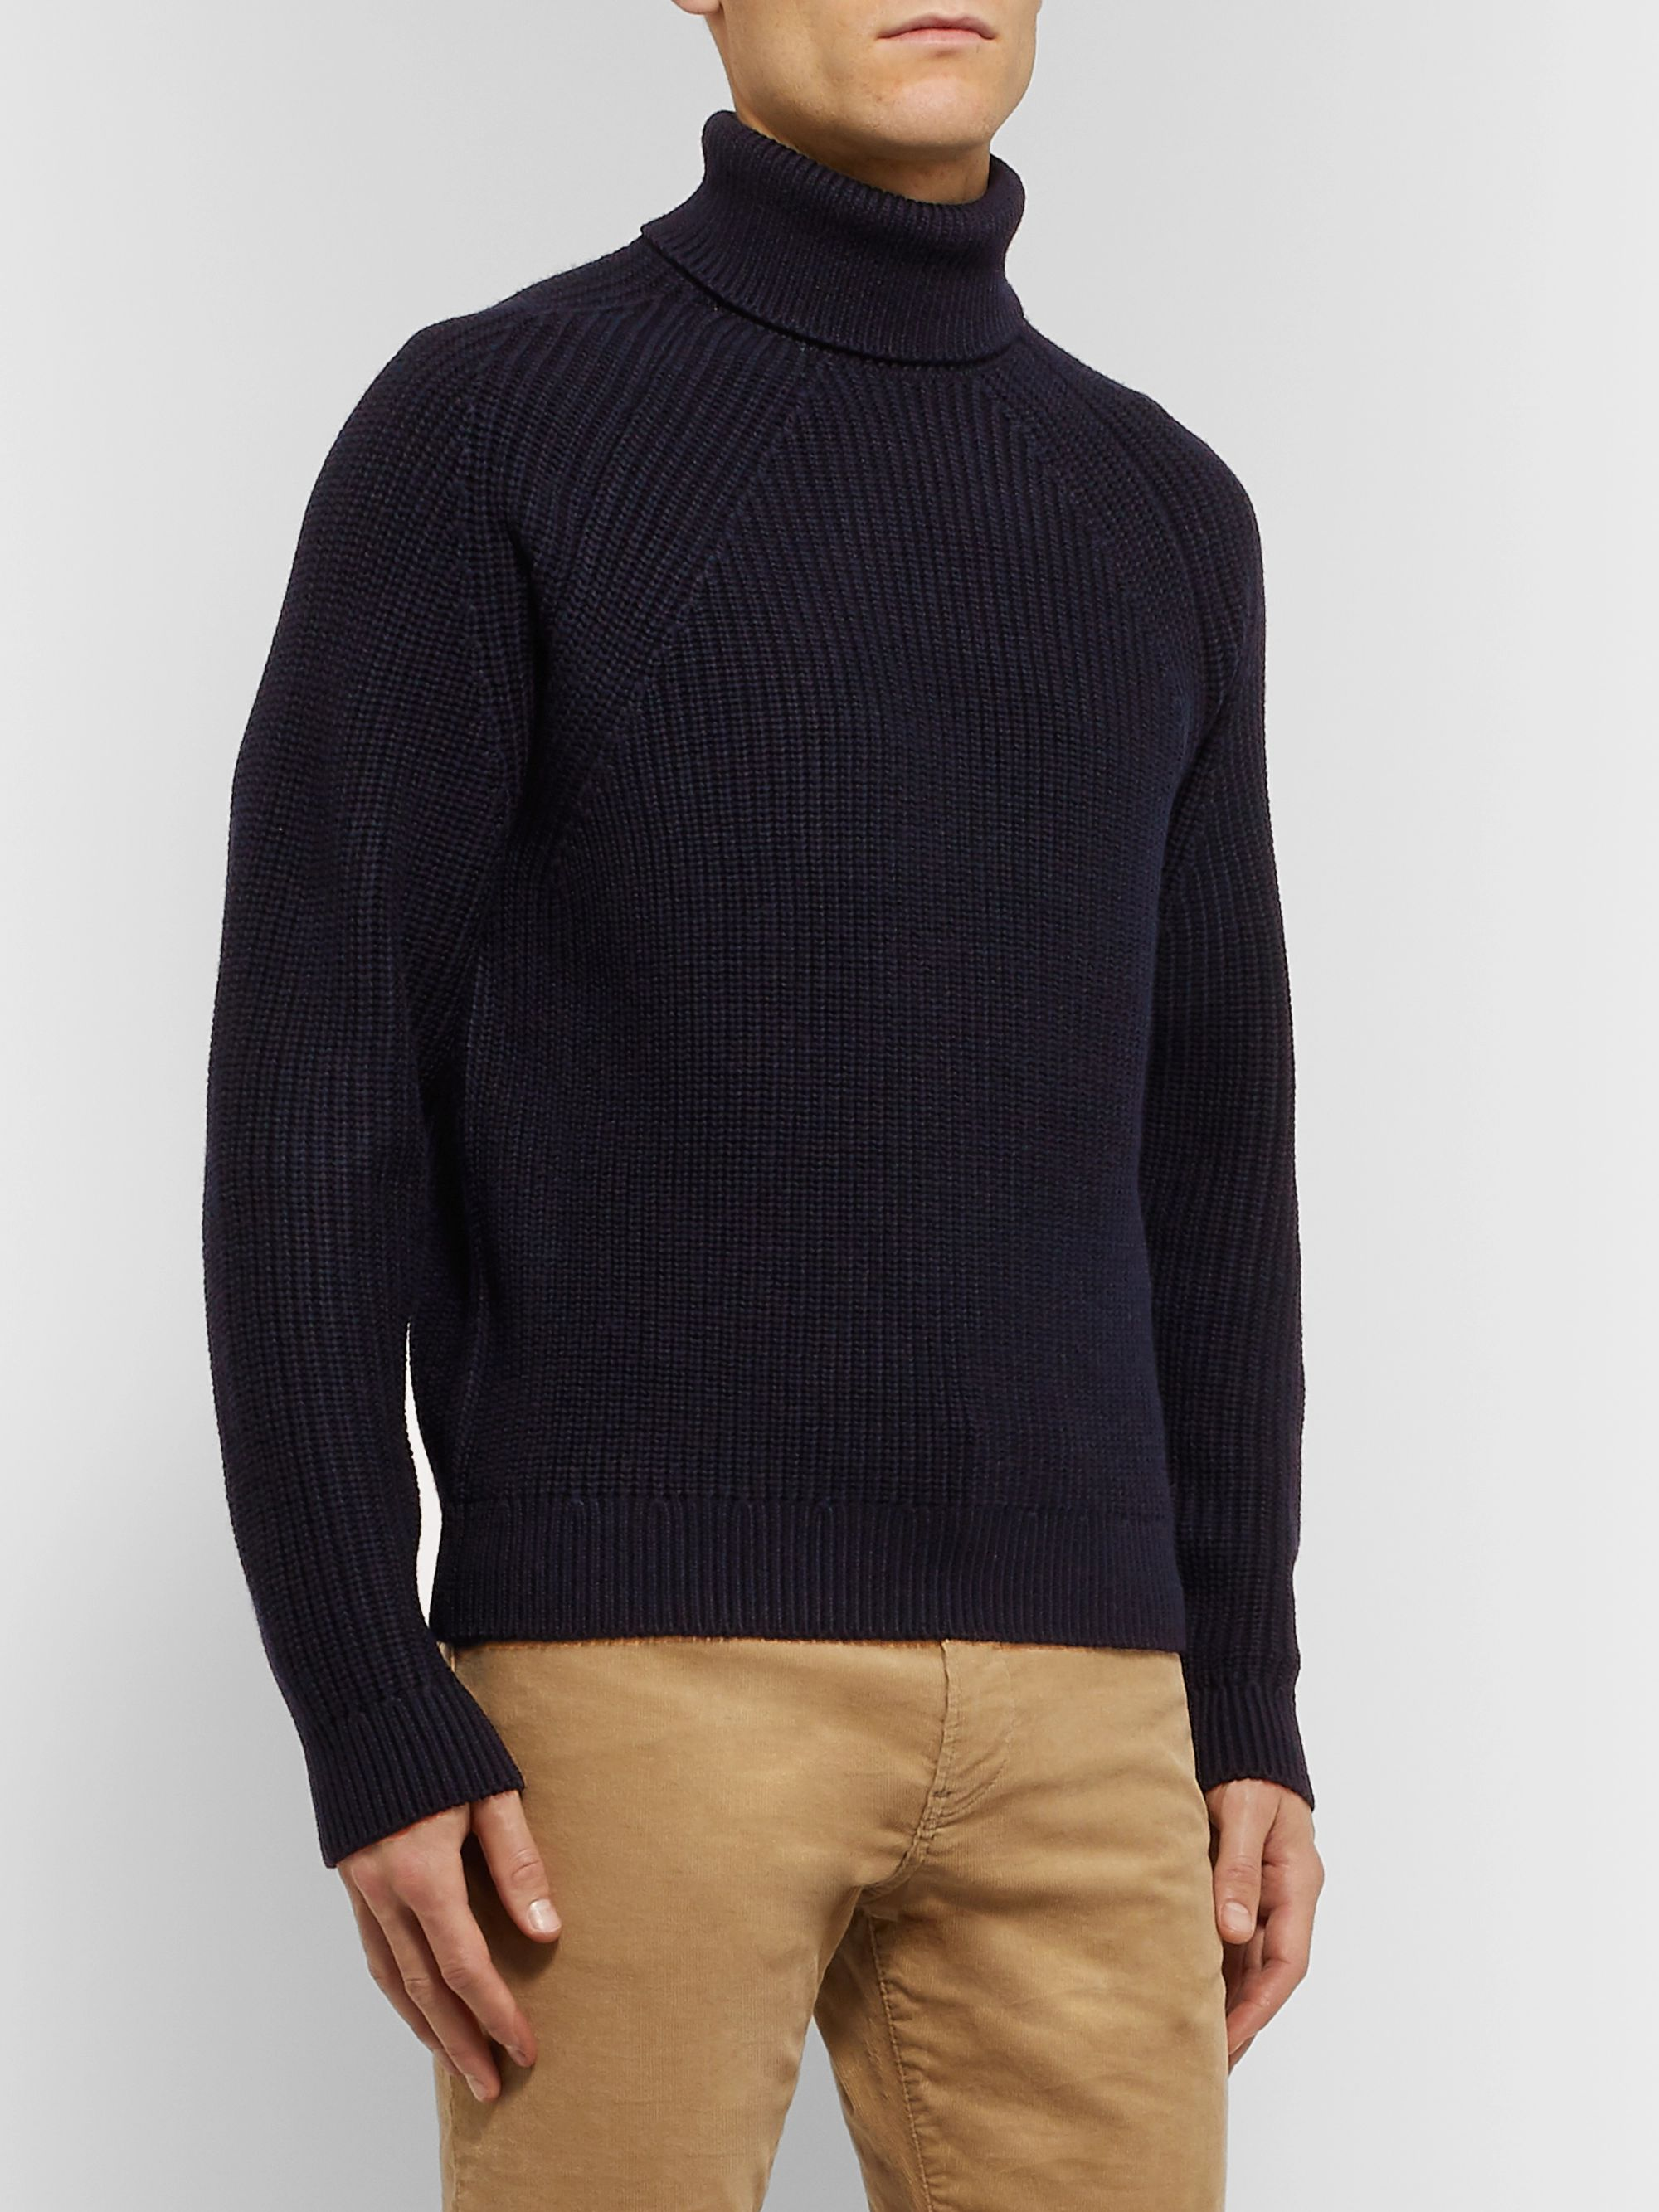 Hugo Boss Ribbed Virgin Wool Rollneck Sweater